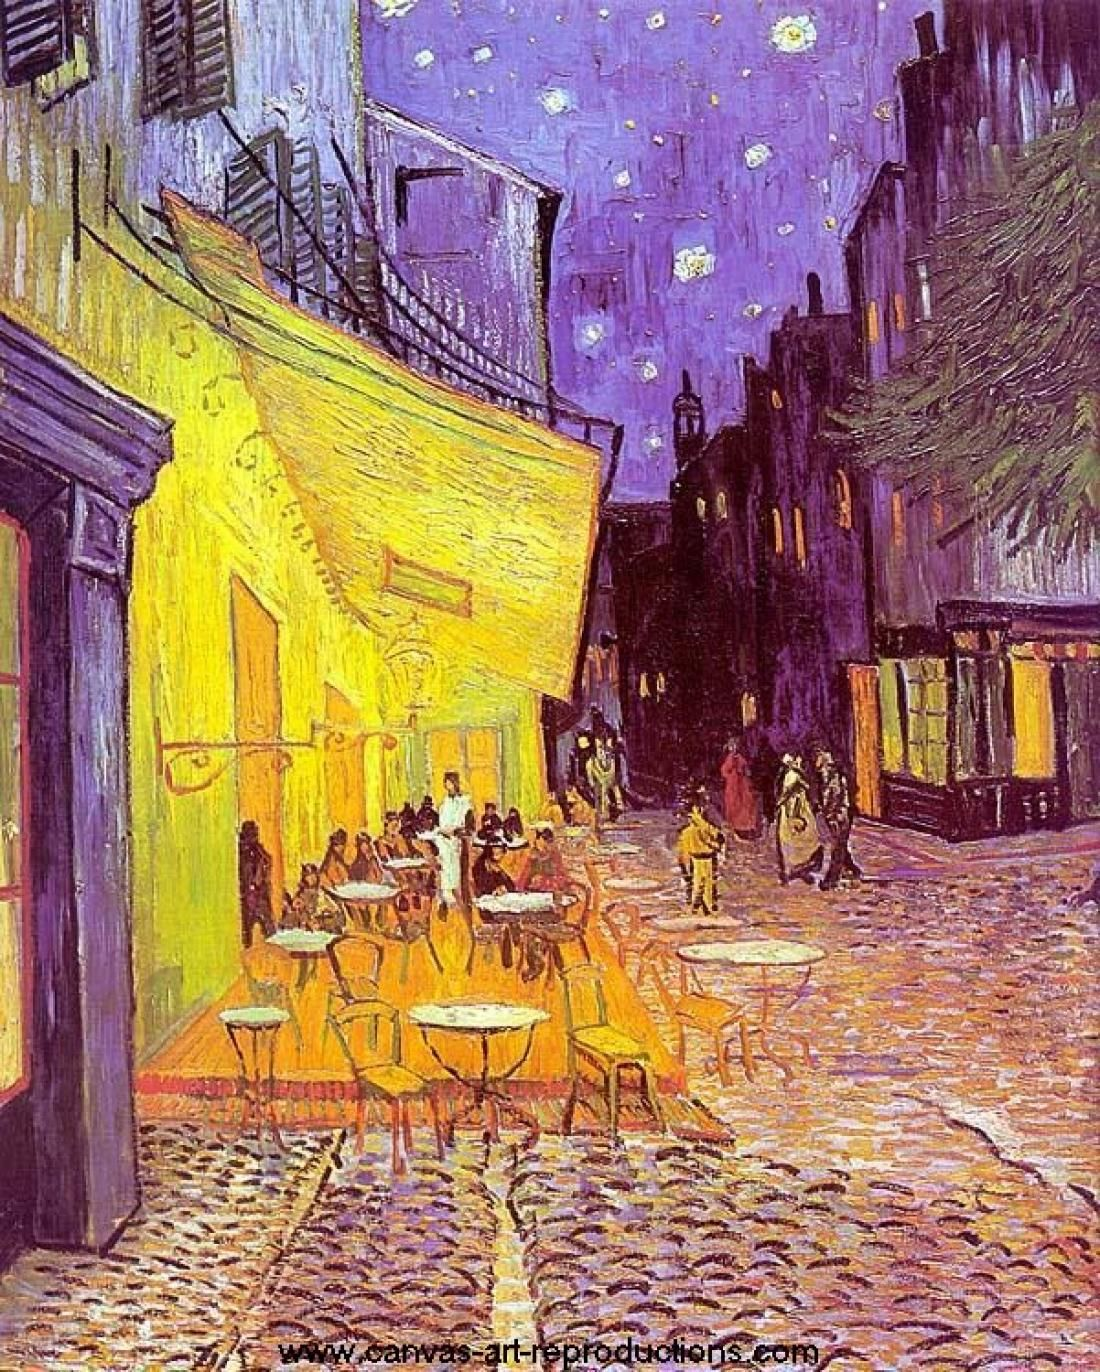 Vincent van Gogh - Cafe Terrace at Night, 1888